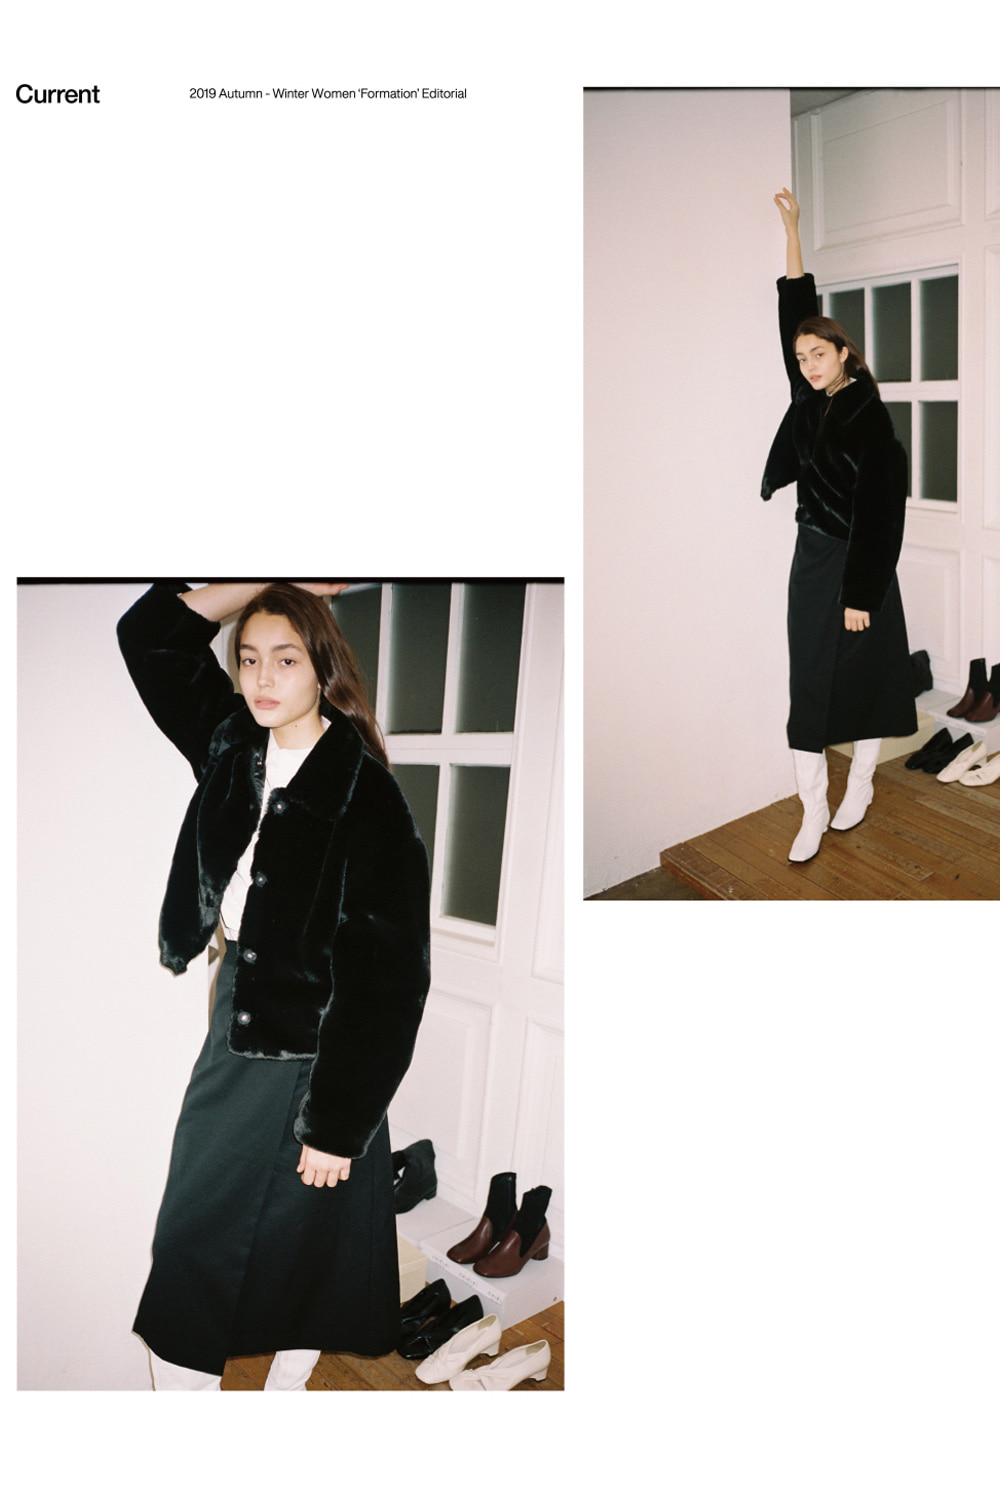 2019 Winter Women Editorial